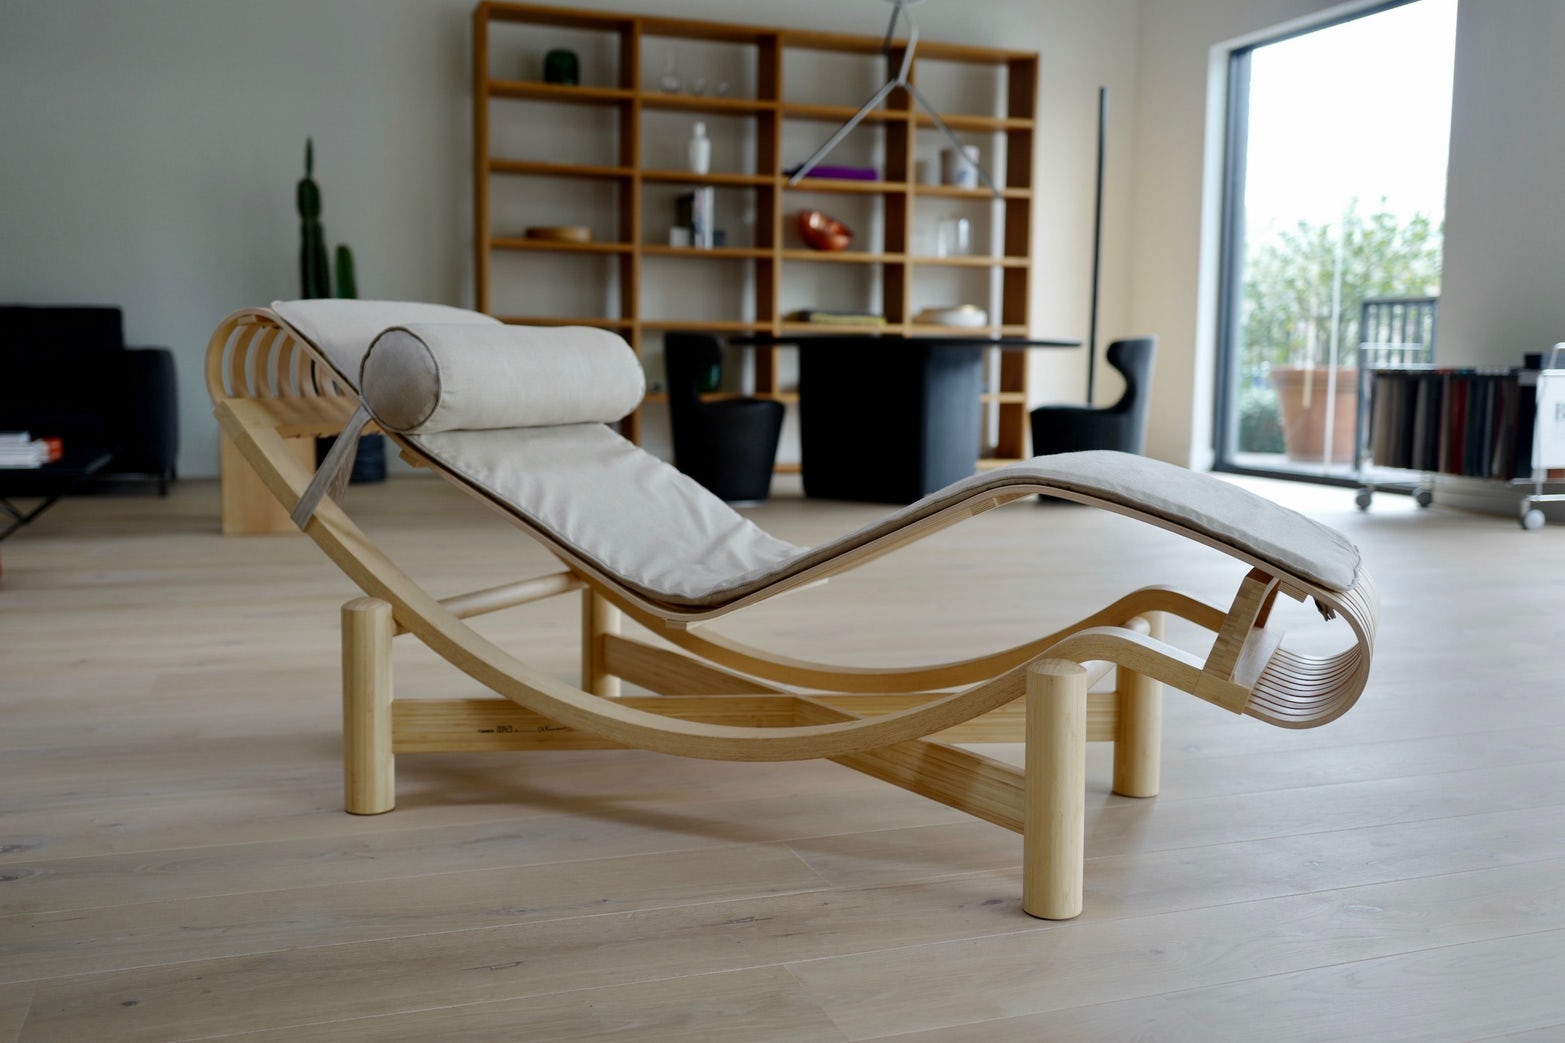 Tokyo Chaise in Bamboo by Charlotte Perriand